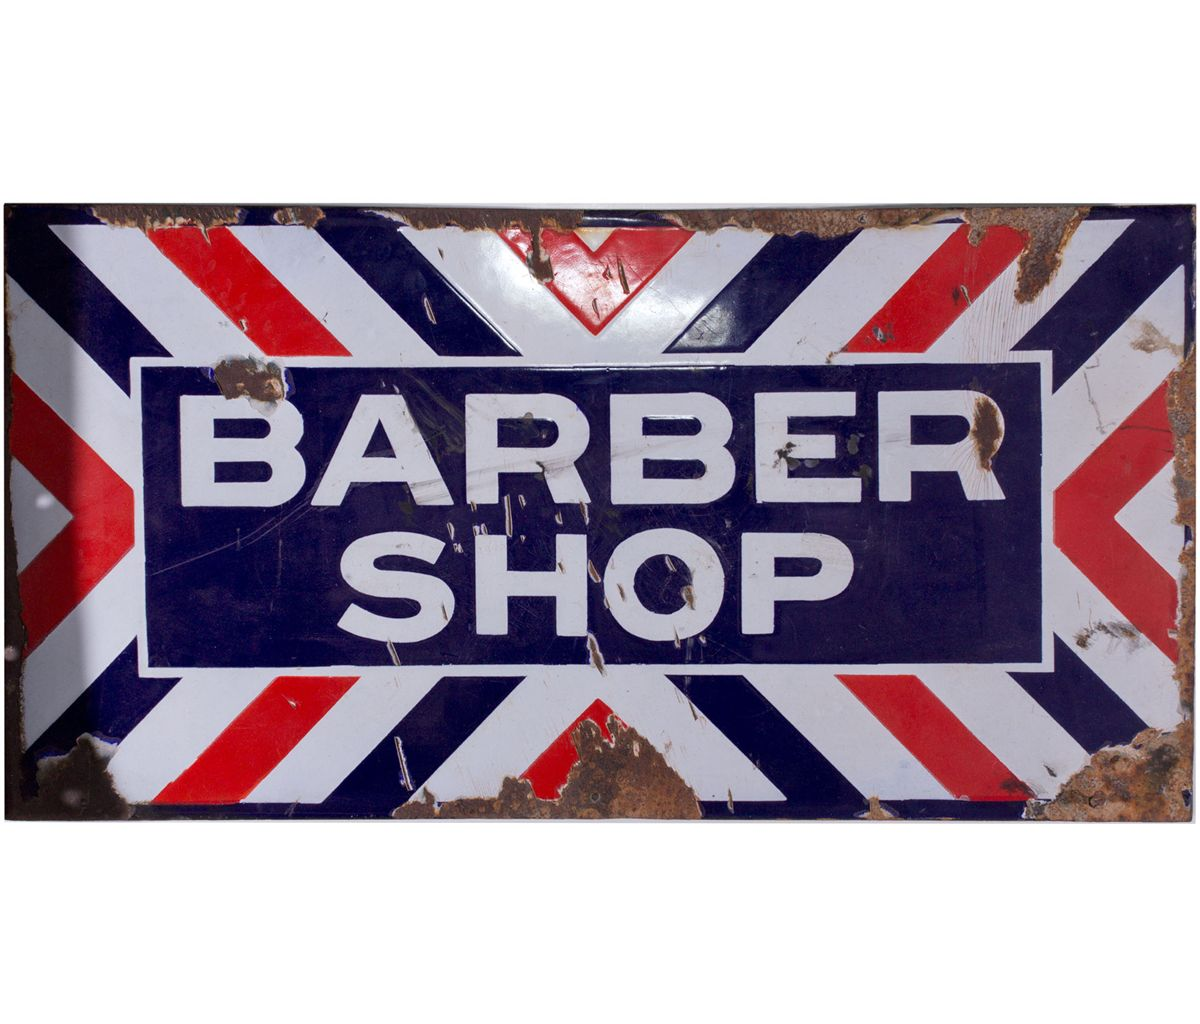 Antique barber shop sign - Antique Barber Shop Sign 17